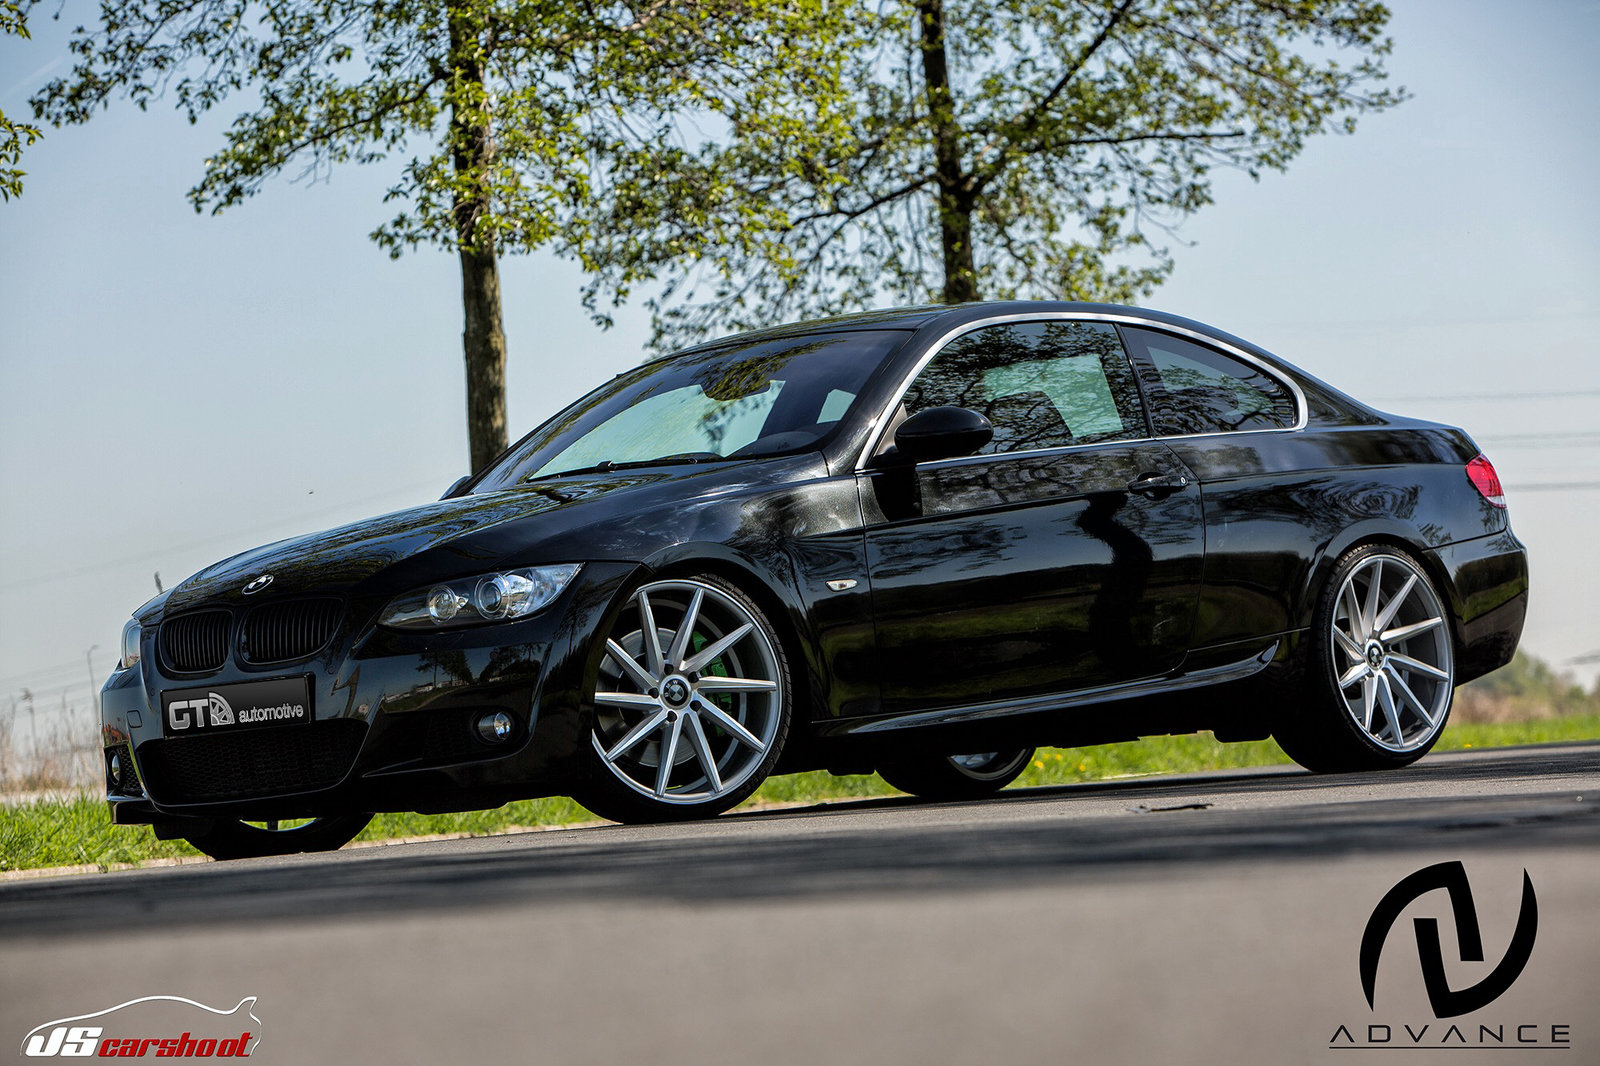 BMW 3er Coupe Typ E92 Galerie By GT Automotive GmbH Co KG